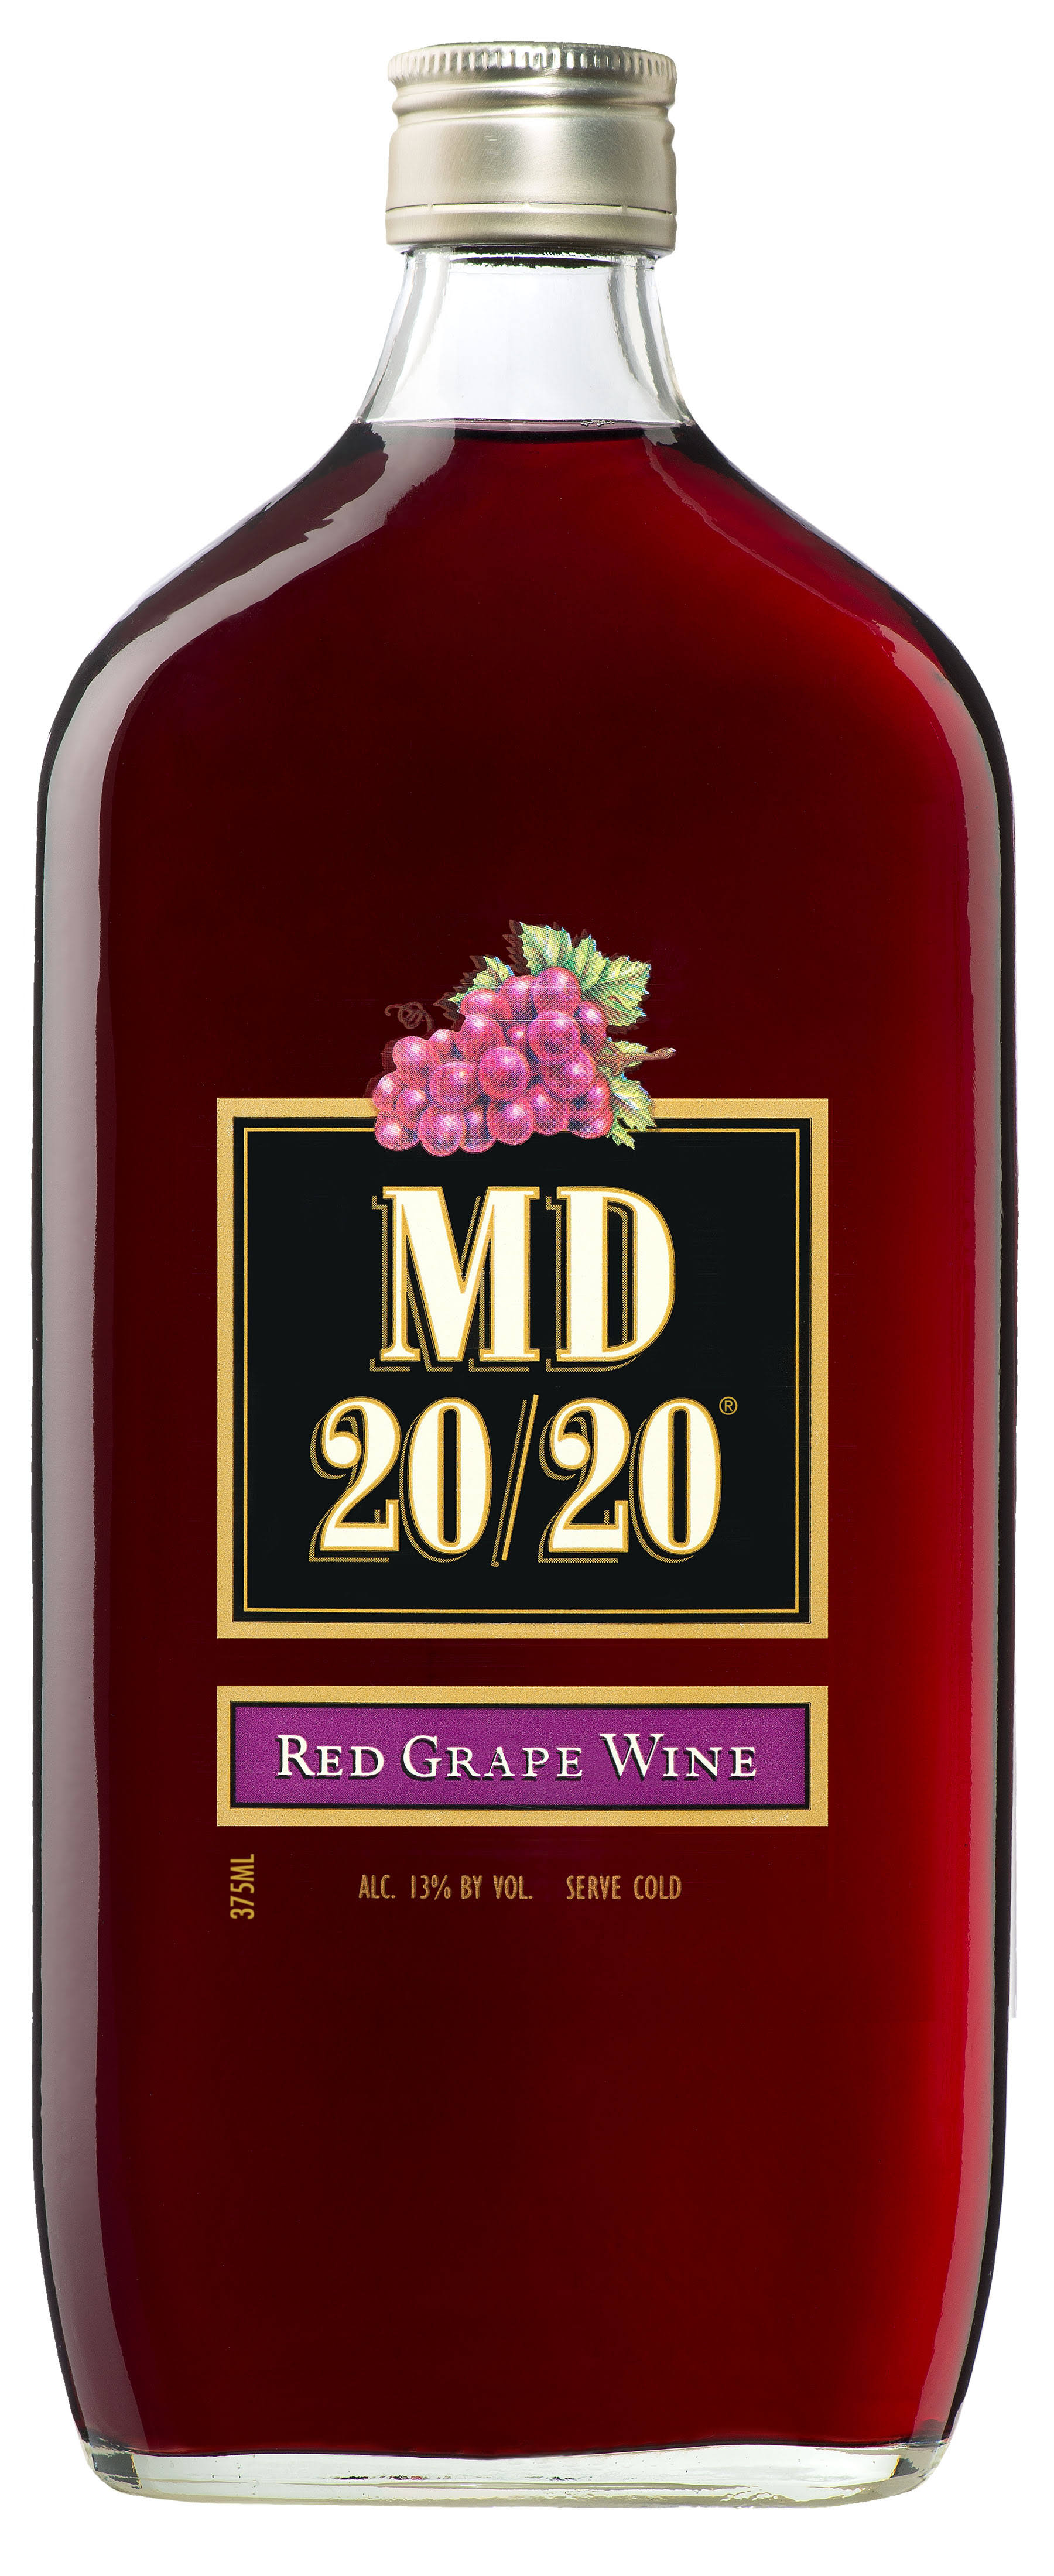 MD 20/20 Red Grape Flavored Wine - 375ml